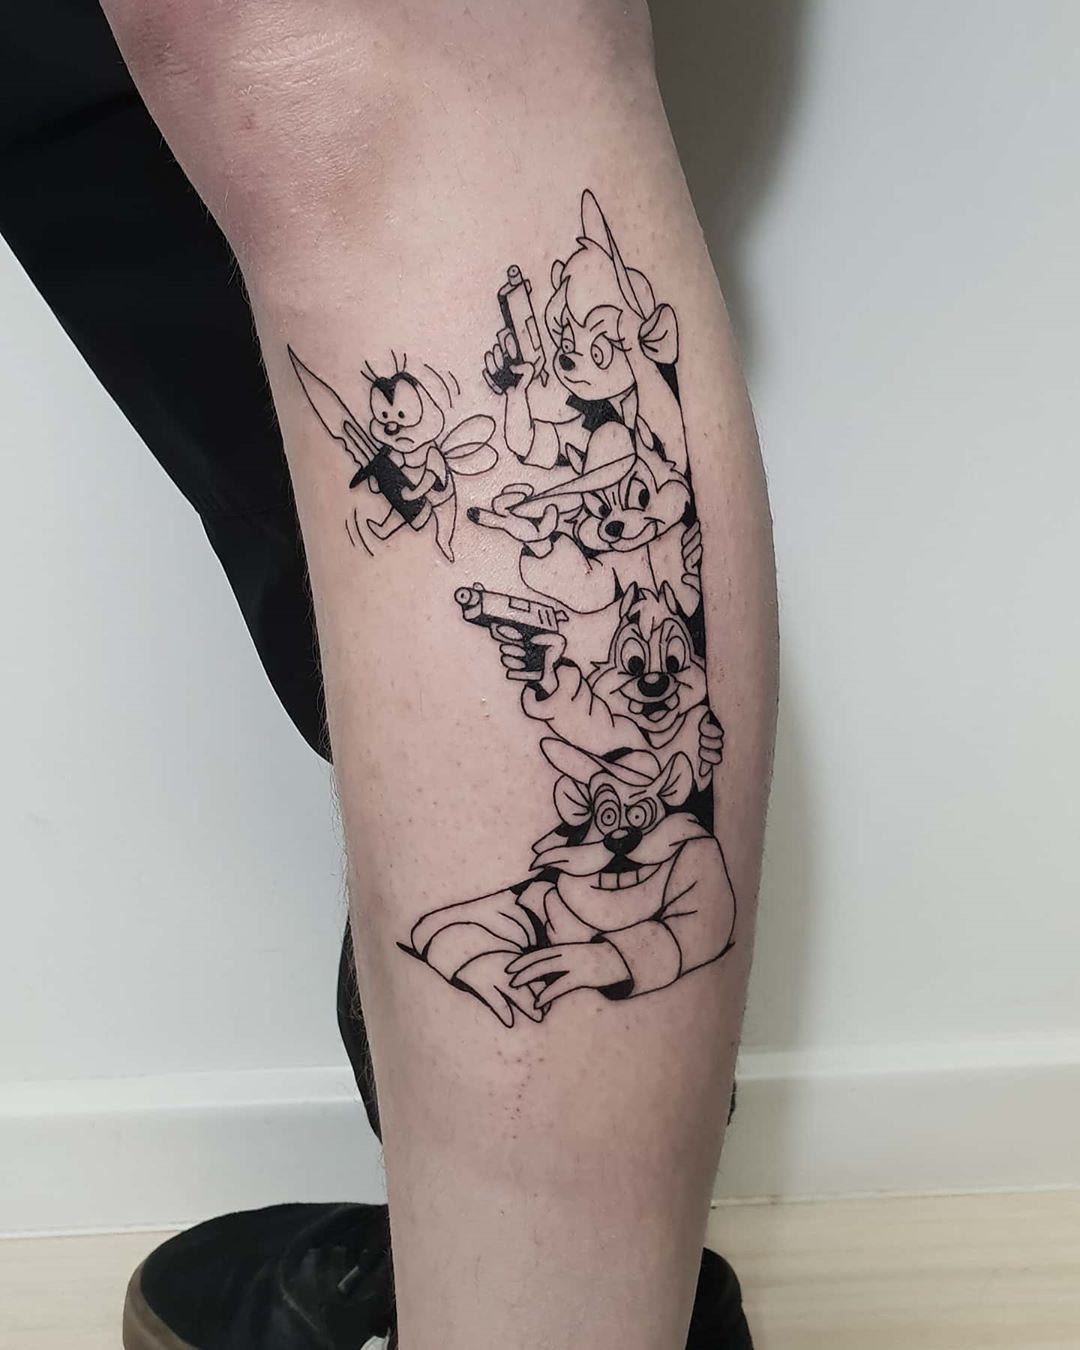 The Rescuers cartoon with a twist tattoo by Lugosis